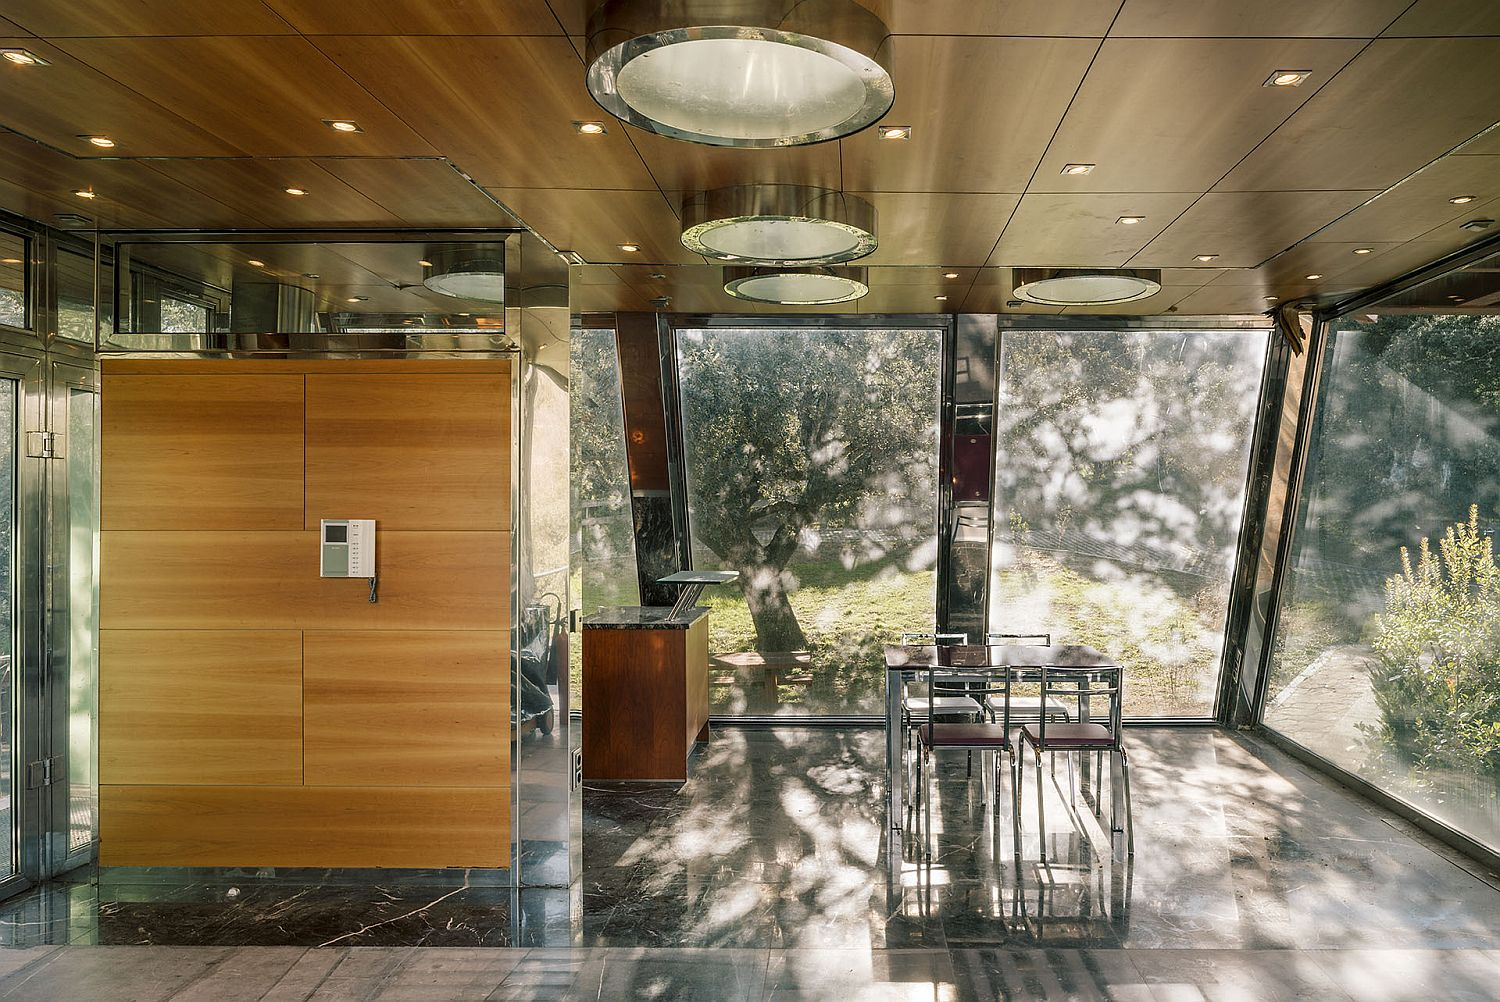 Wood, glass and metal give the interior a classy, contemporary look